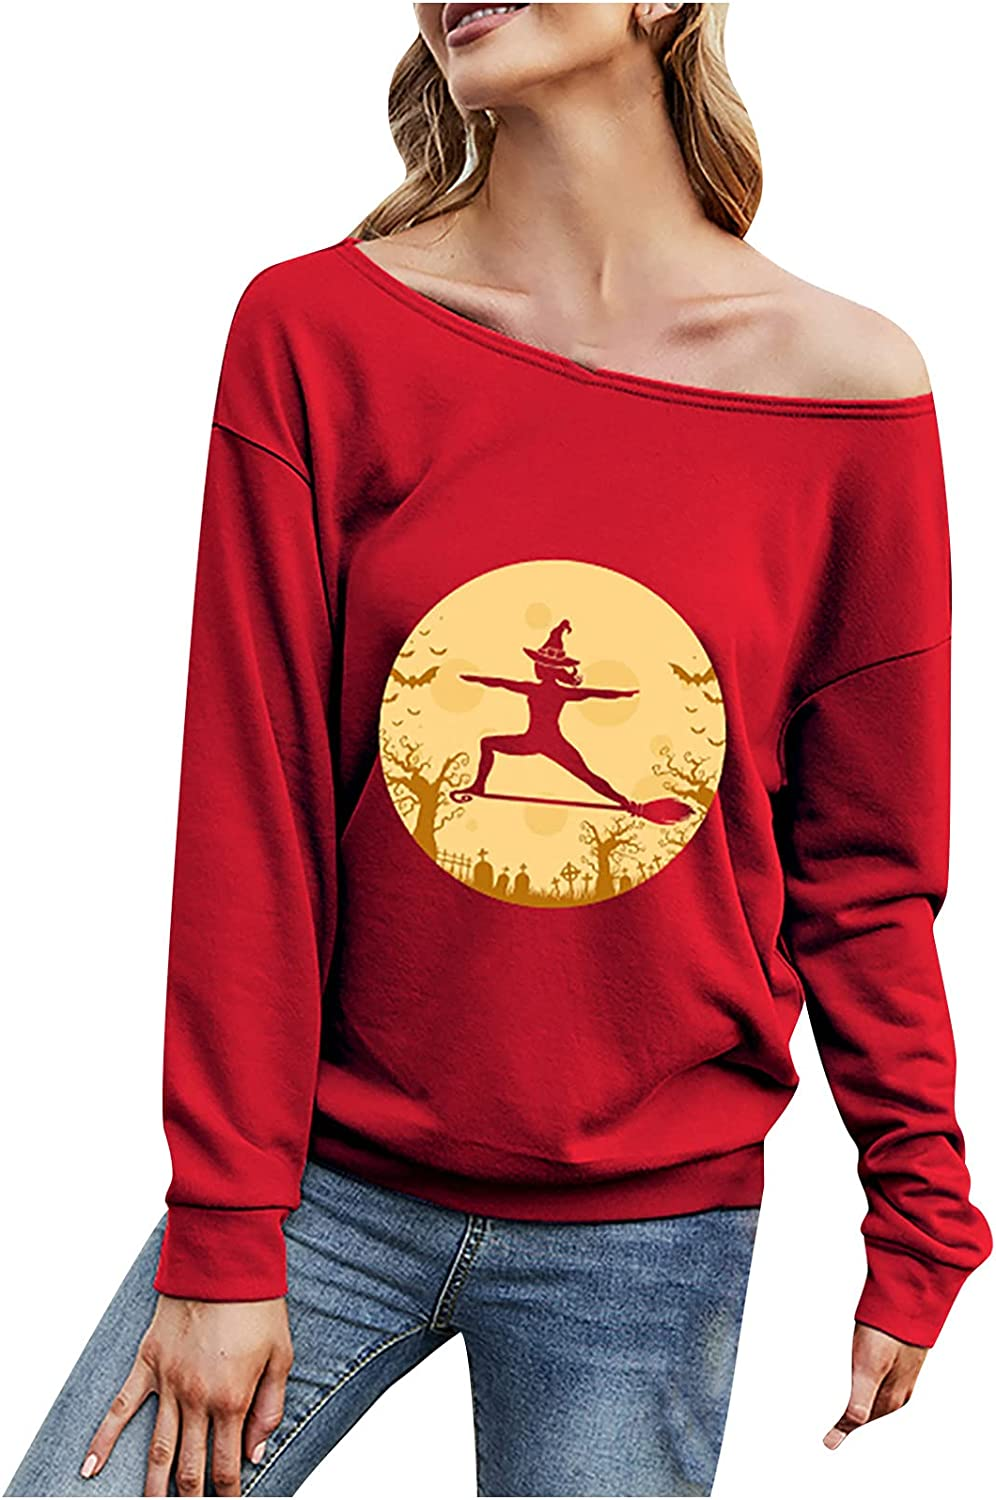 Halloween Sweatshirt for Women One Off Shoulder Tops Plus Size Long Sleeve Funny Print Pullover Casual Comfy Blouse